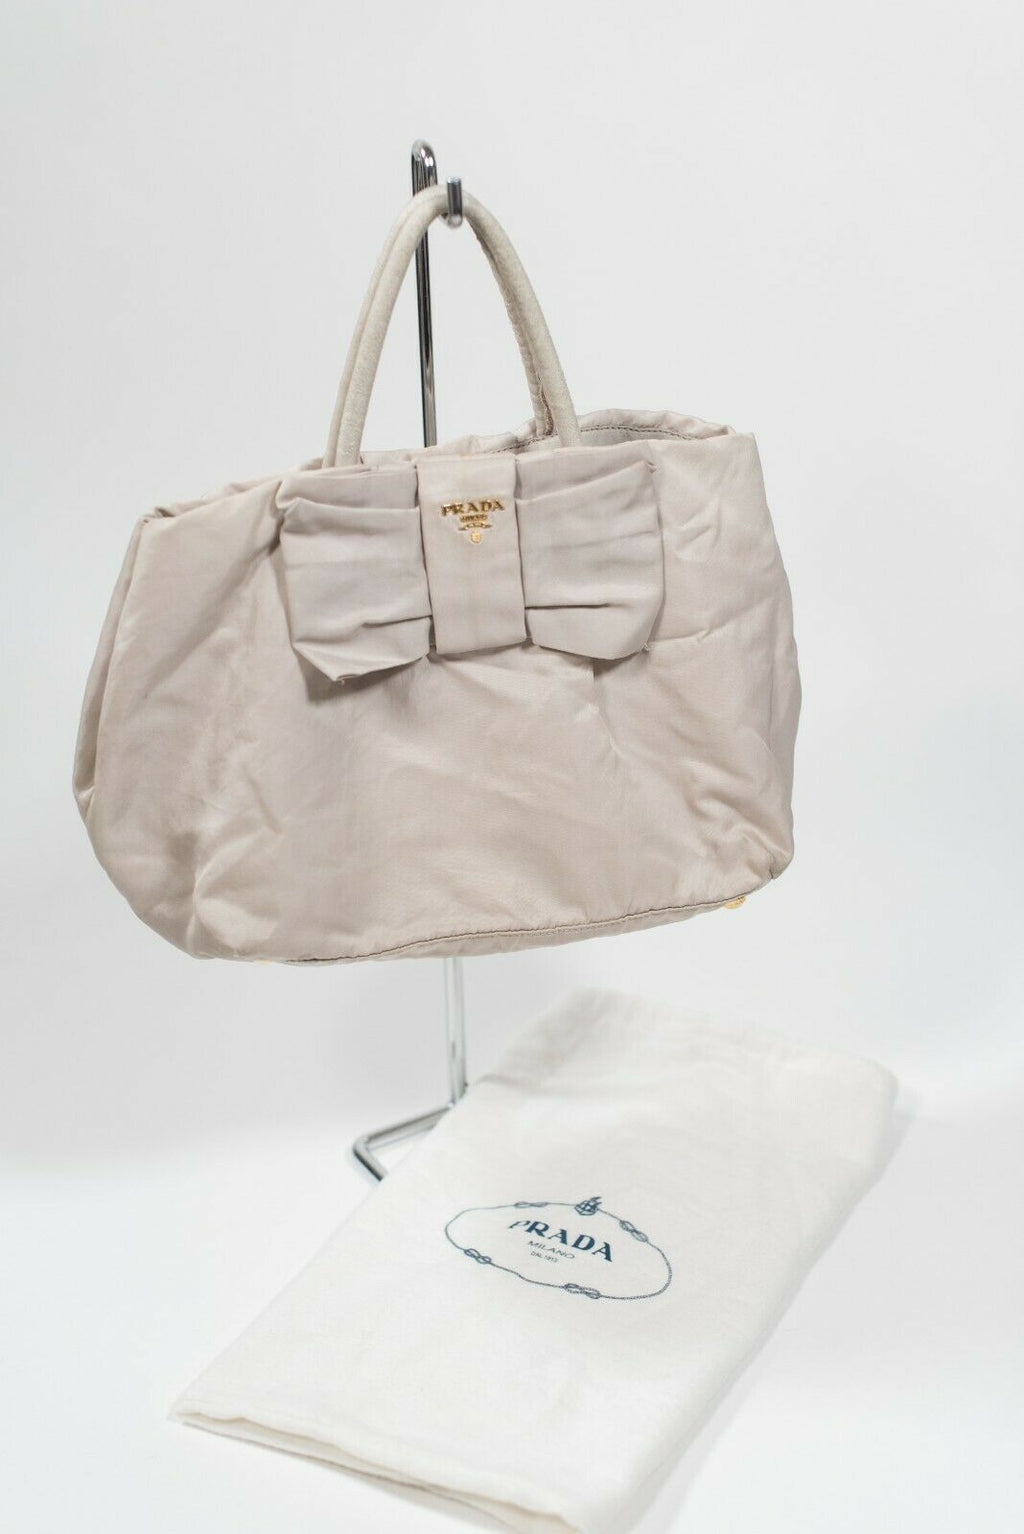 Prada Womens Beige Handbag Nylon Purse Top Handle Bow Purse Dust Bag Included